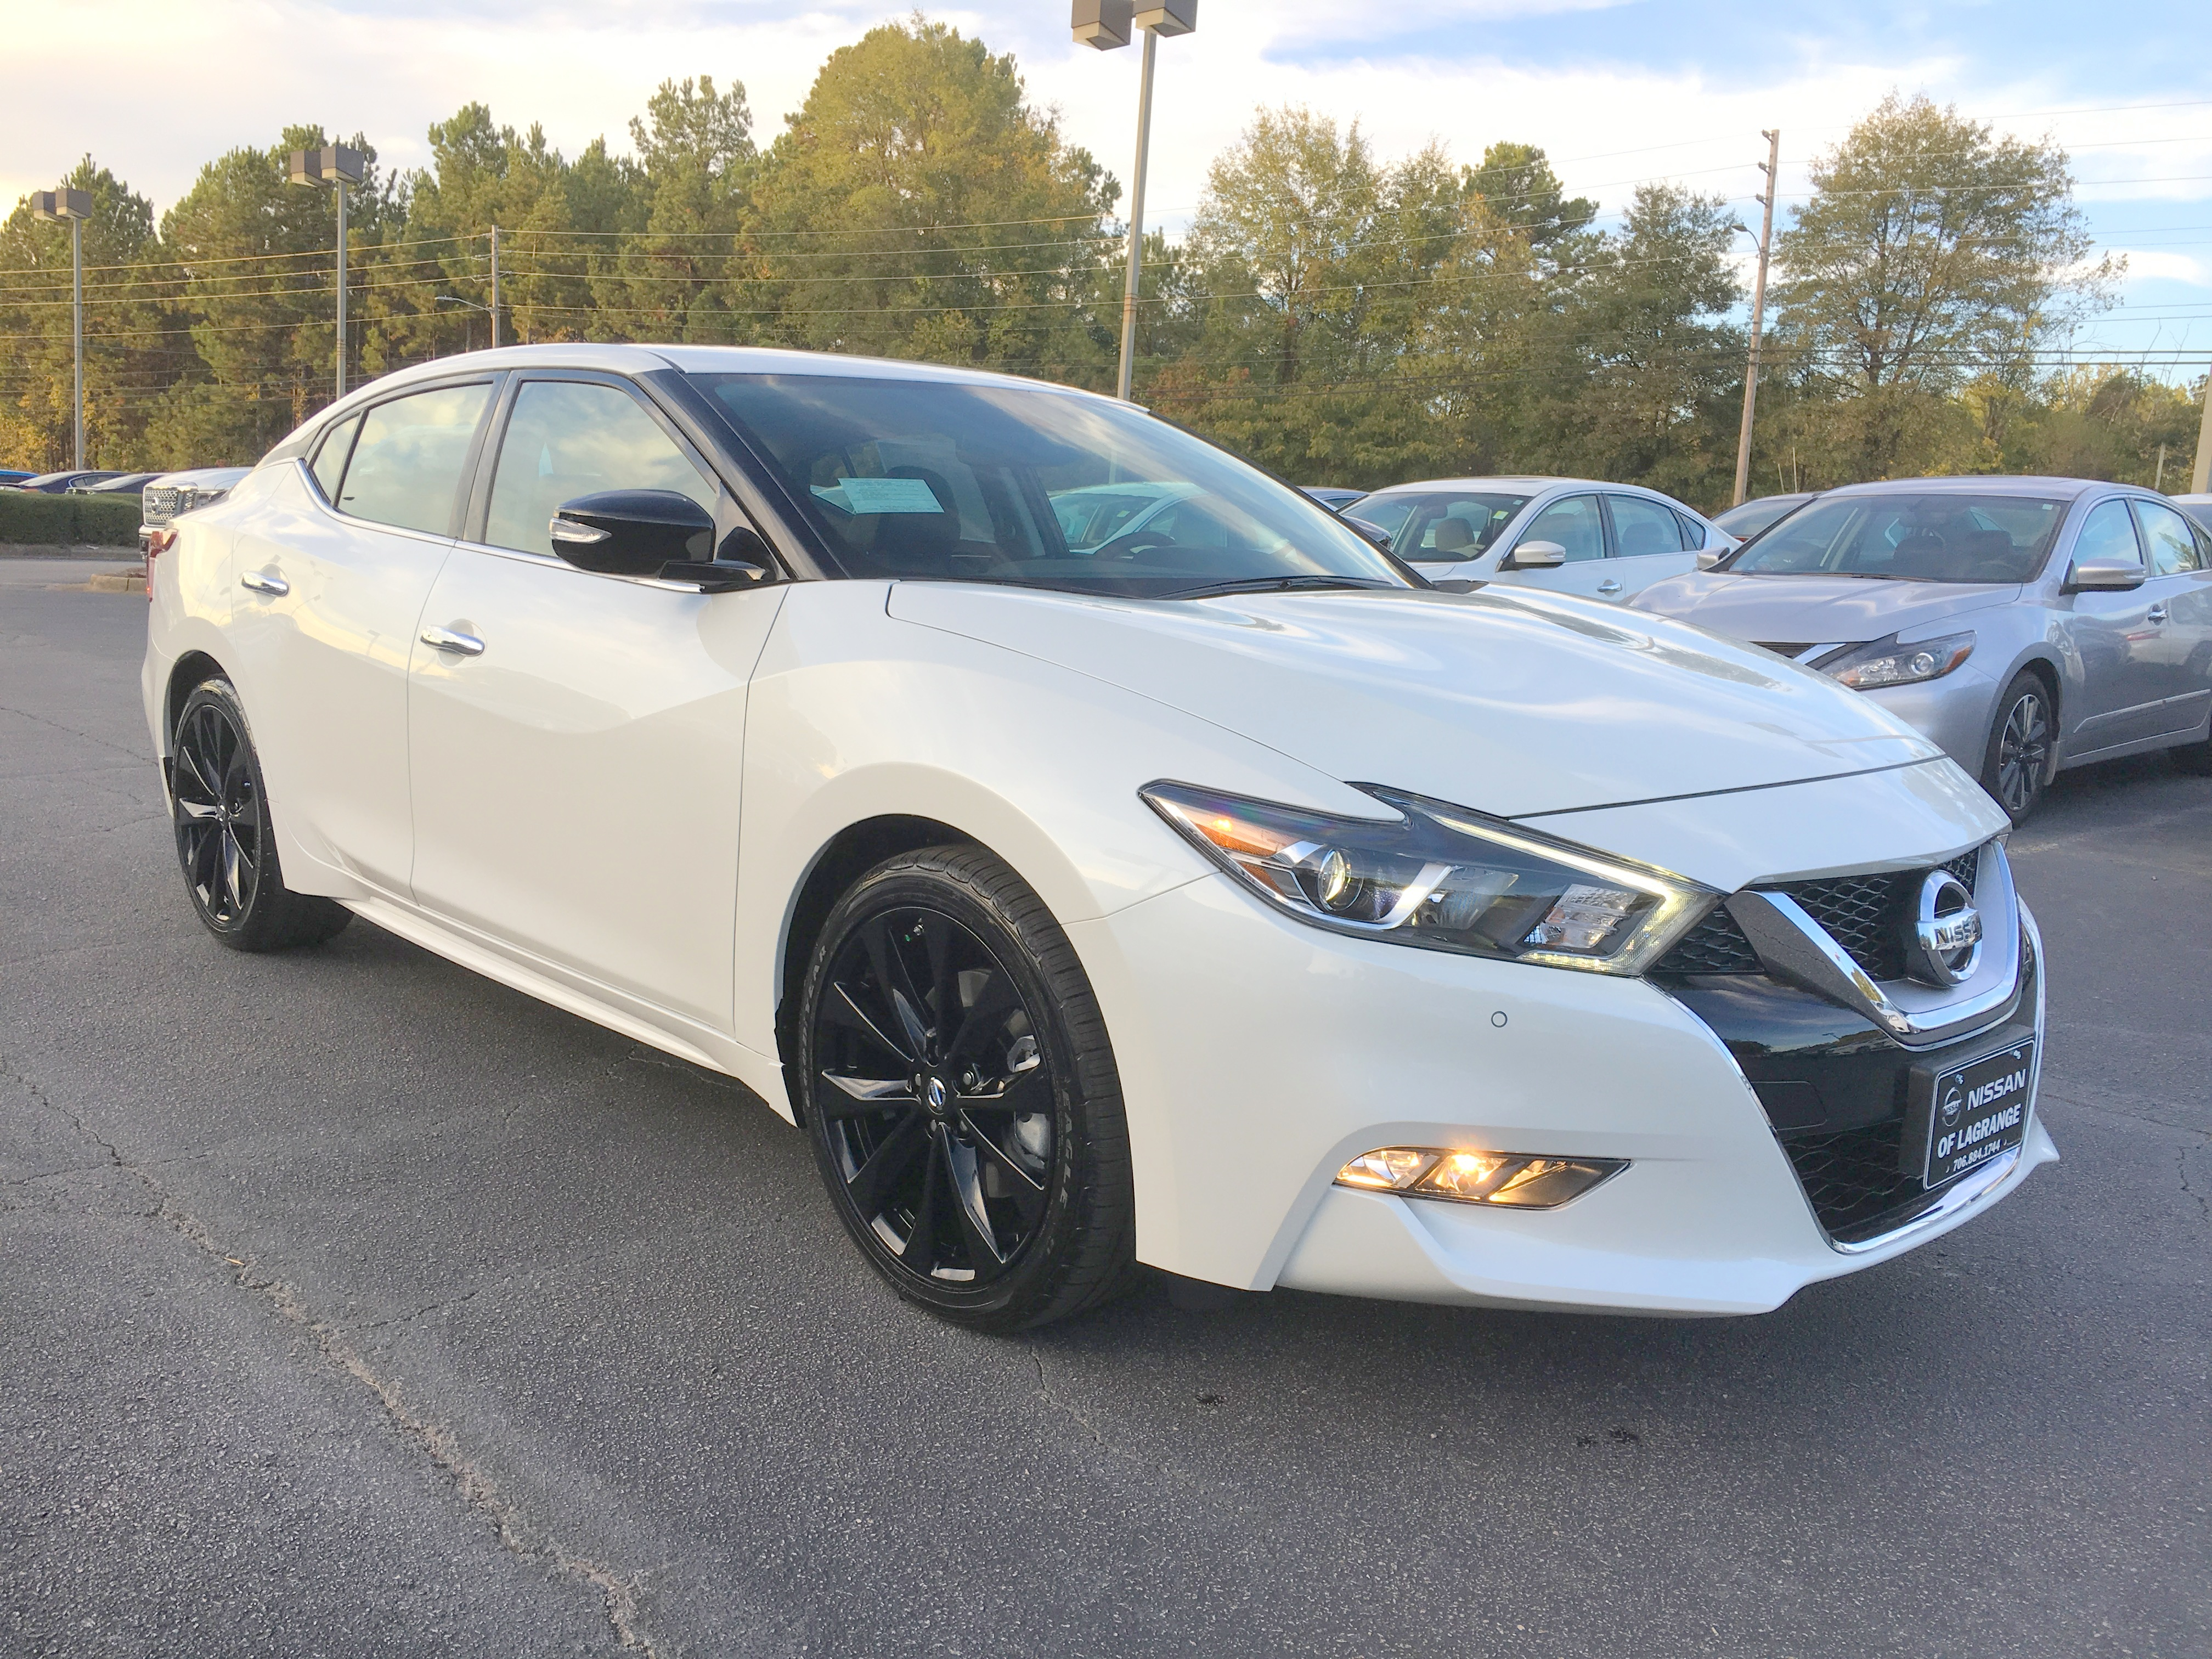 2017 nissan maxima 3 image gallery hcpr 2017 nissan maxima sr midnight edition pearl white vanachro Images